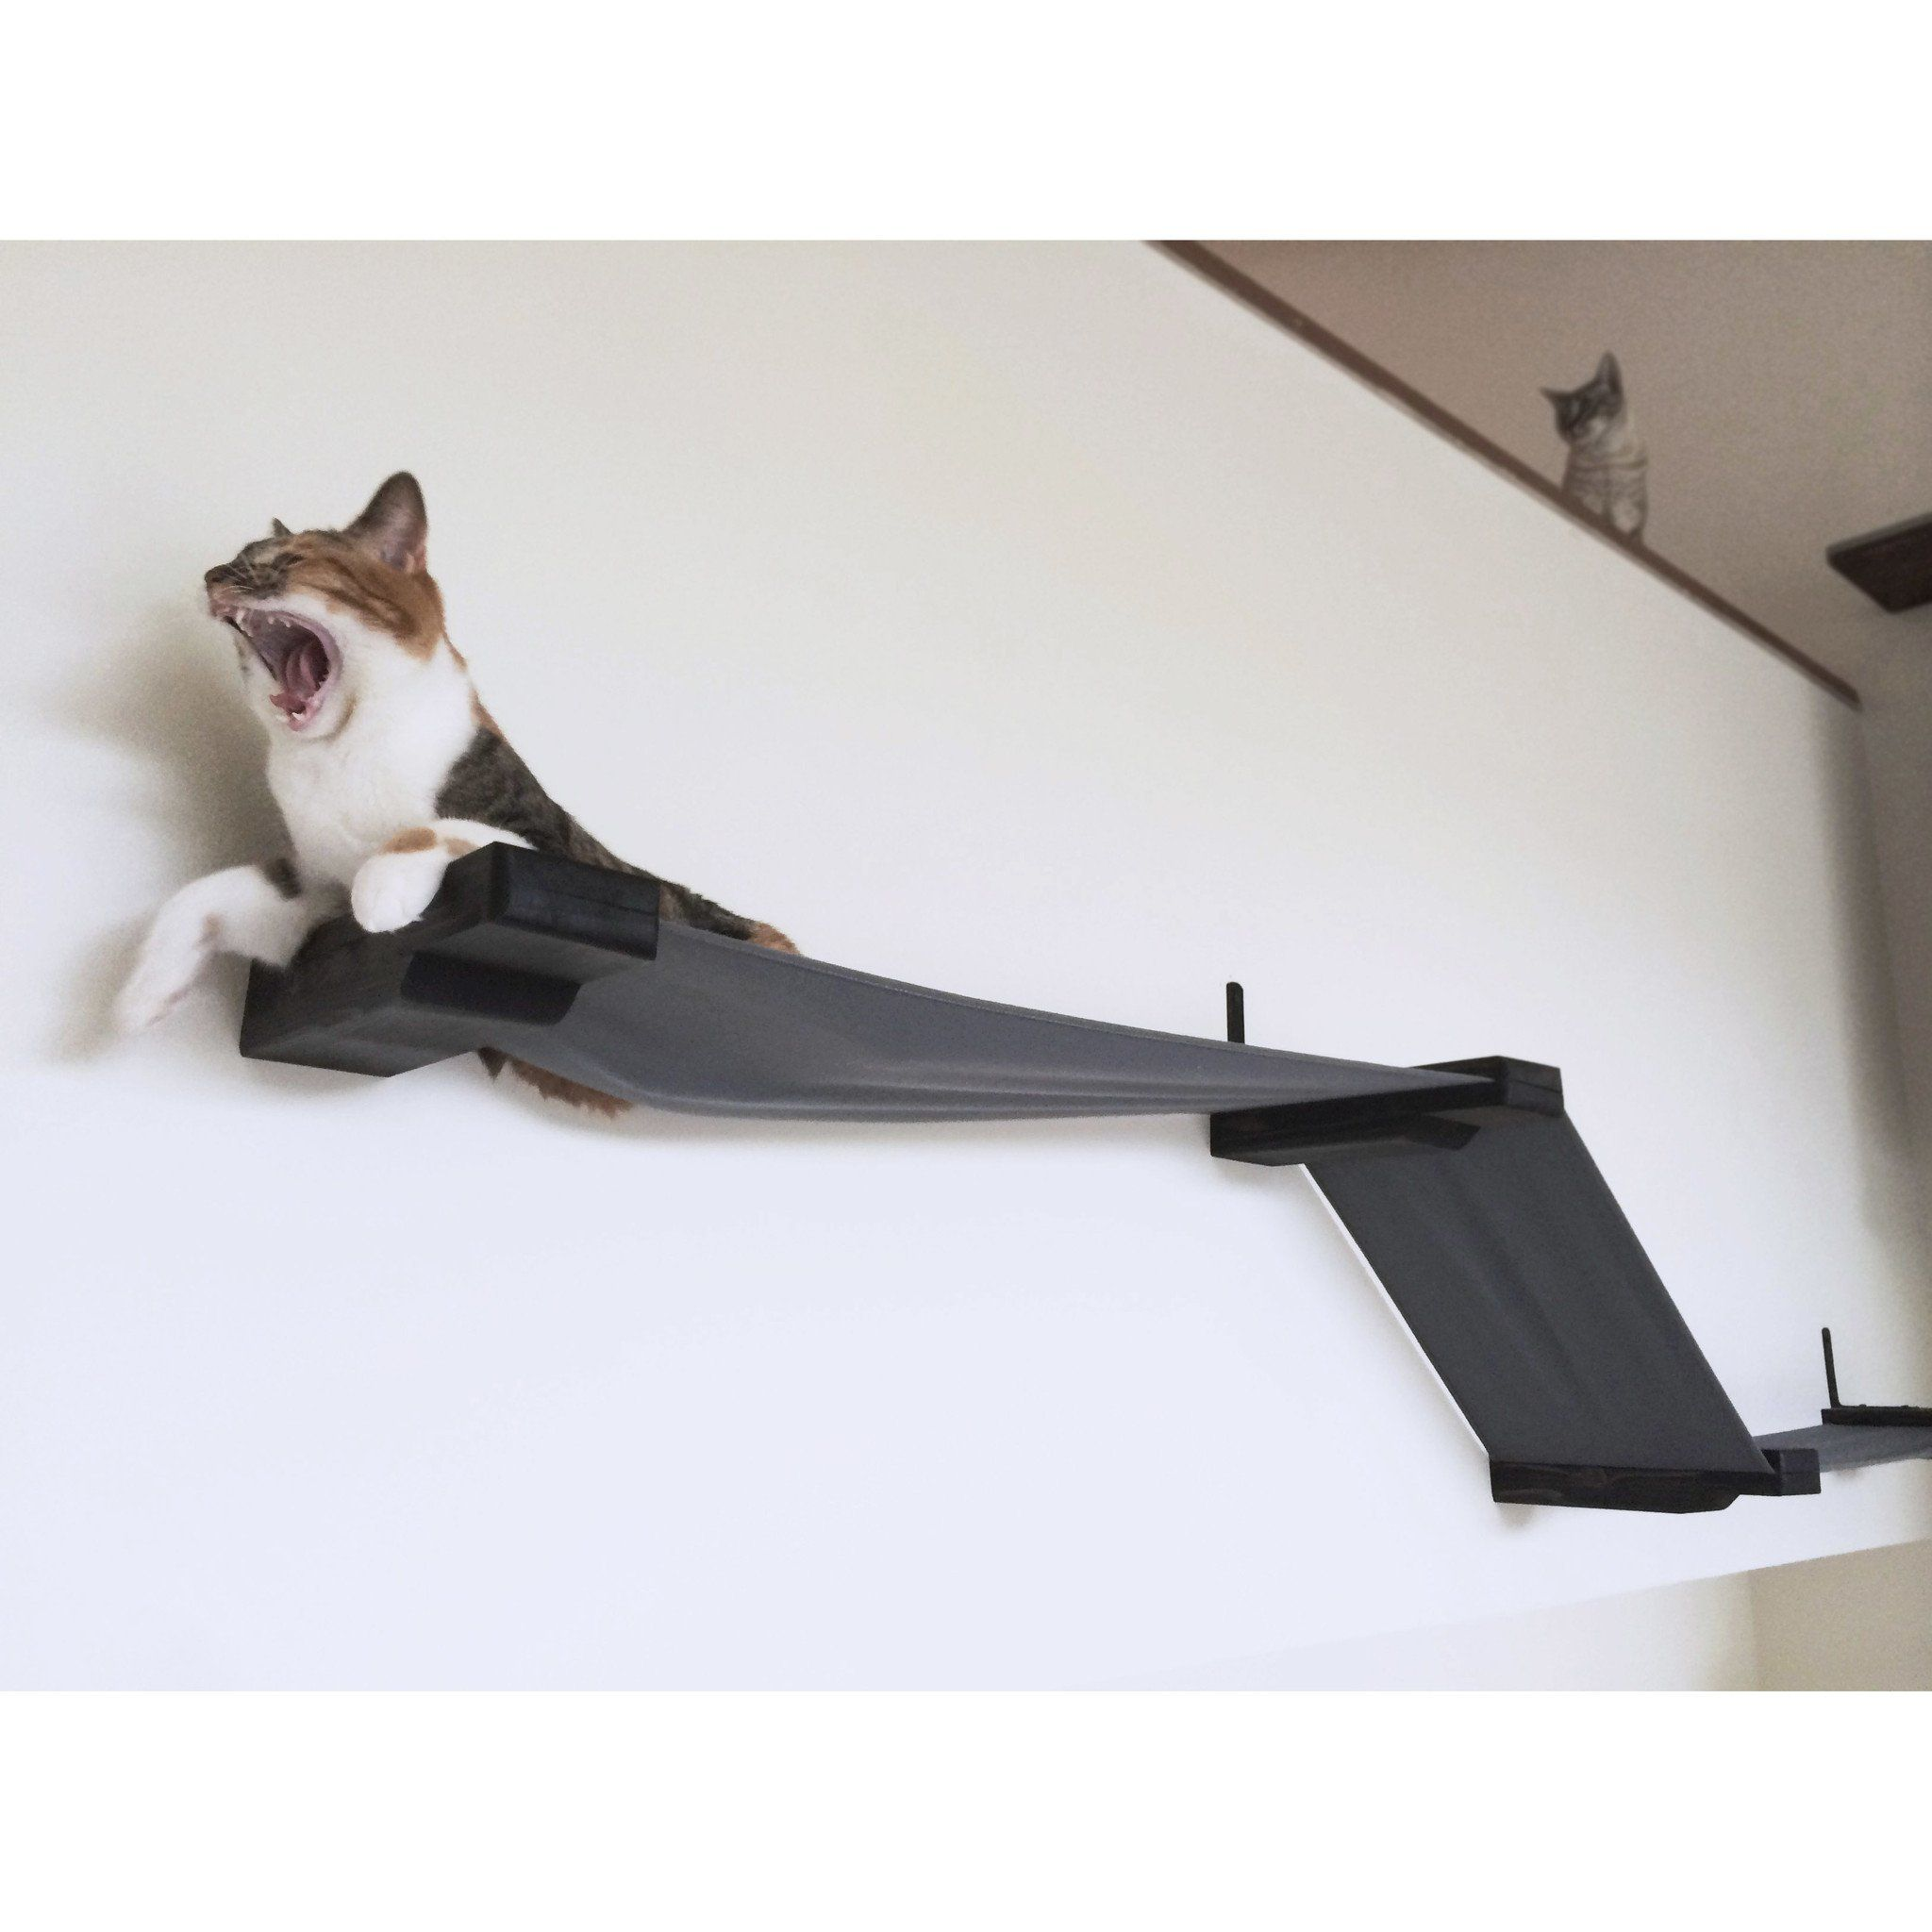 16 Multiple Lounge Cat Perch By Catastrophic Creations